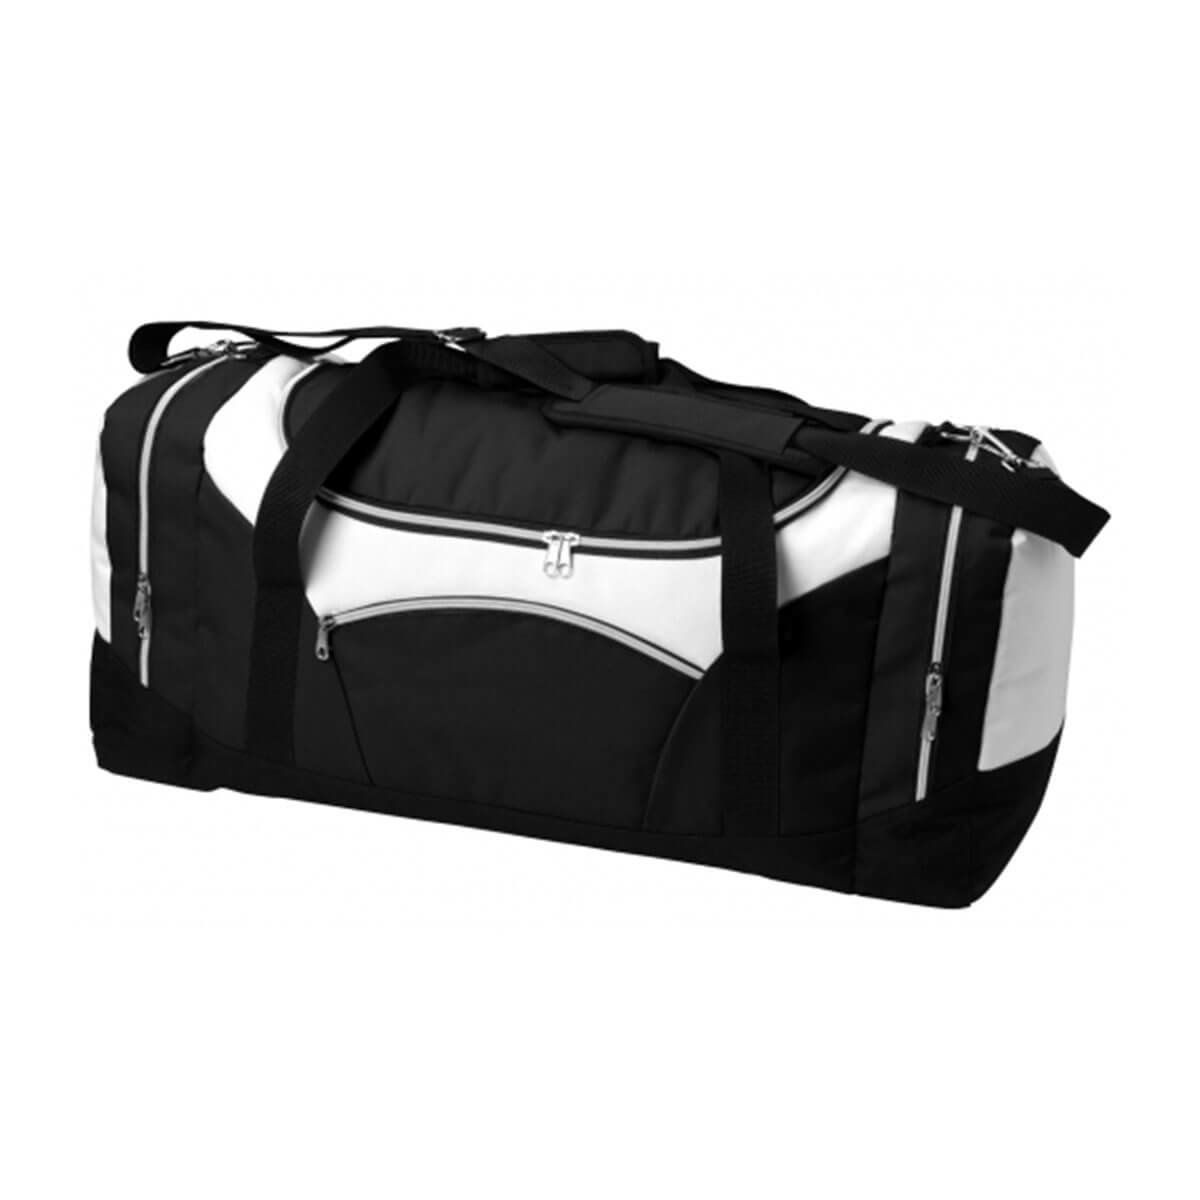 Stellar Sports Bag-Black / White